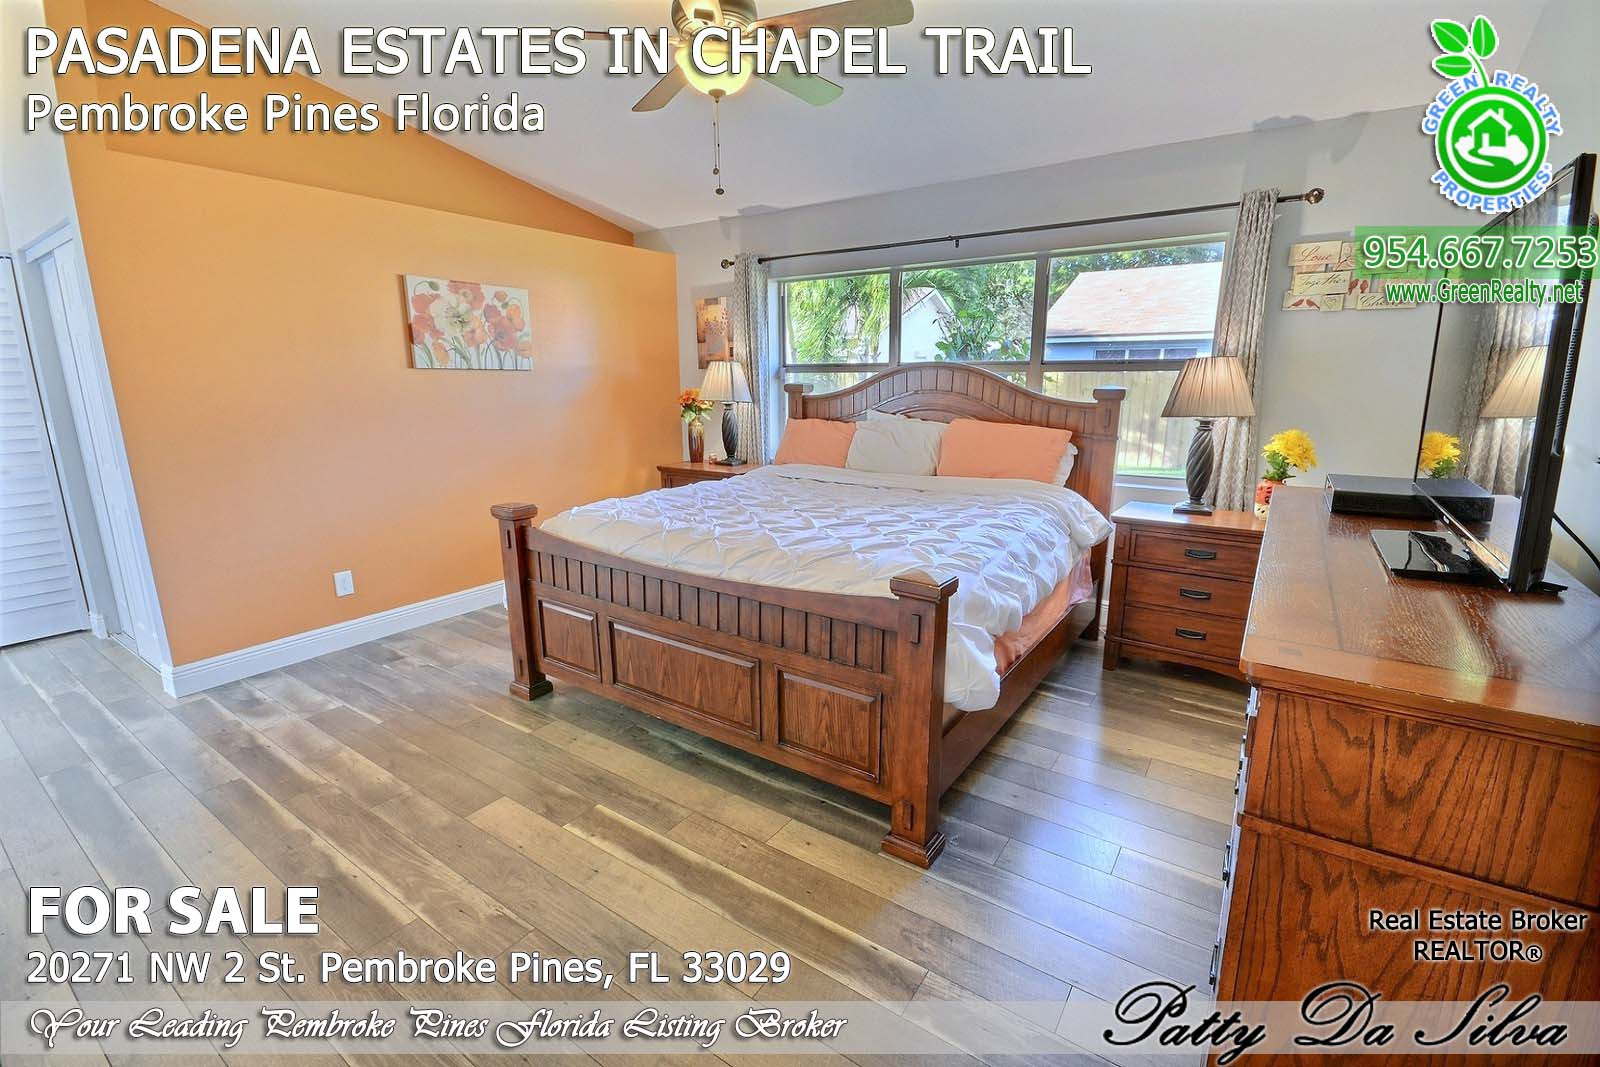 Pasadena Estates of Chapel Trail - Pembroke Pines FL (12)